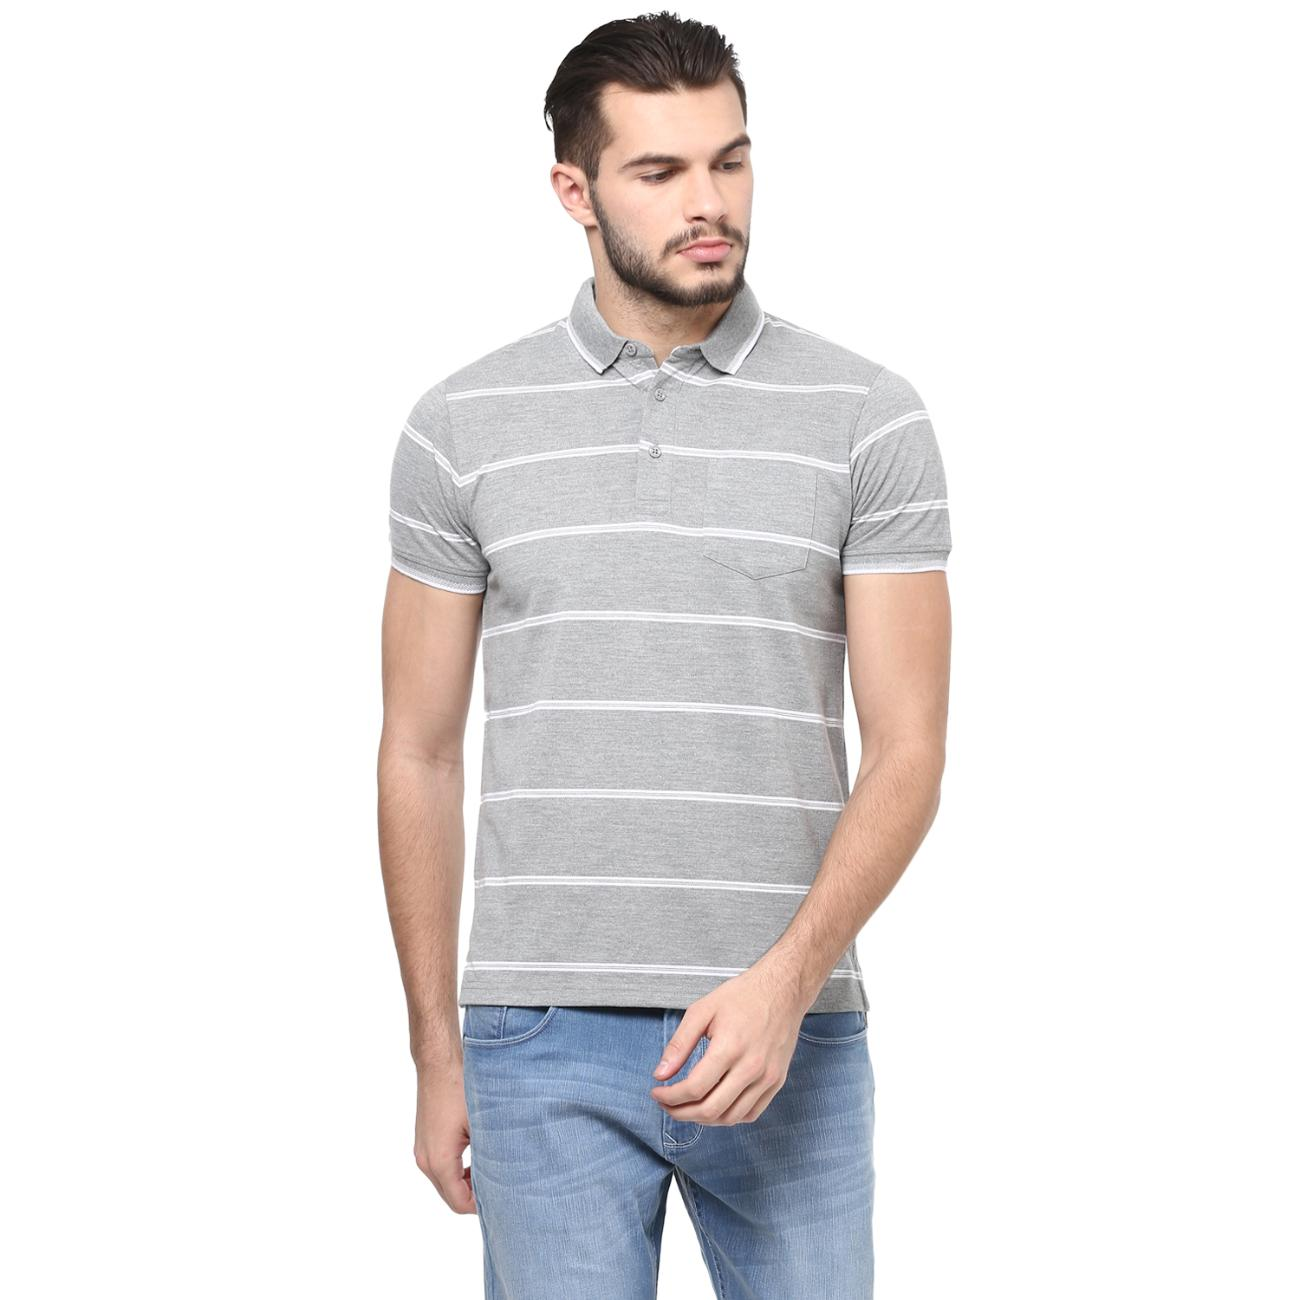 Grey Color TShirts from Red Chief